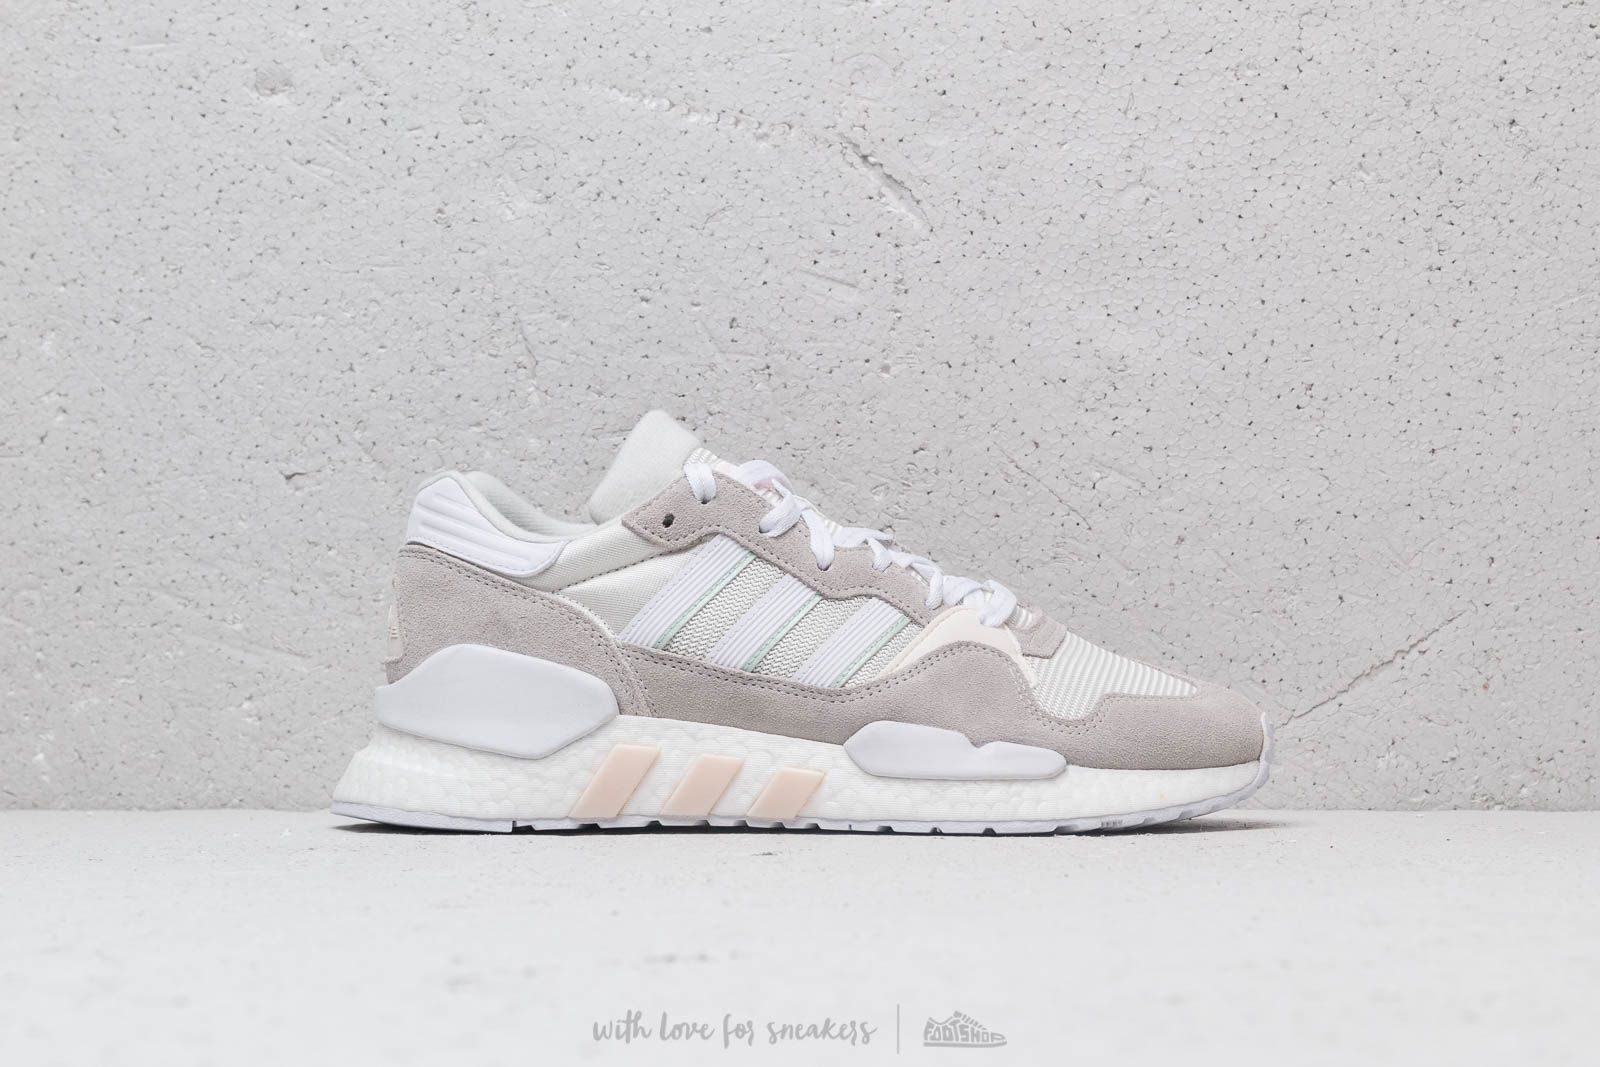 best sneakers 6afca 2cbe6 adidas ZX930 x EQT Cloud WHite  Ftw White  Grey One at a great price